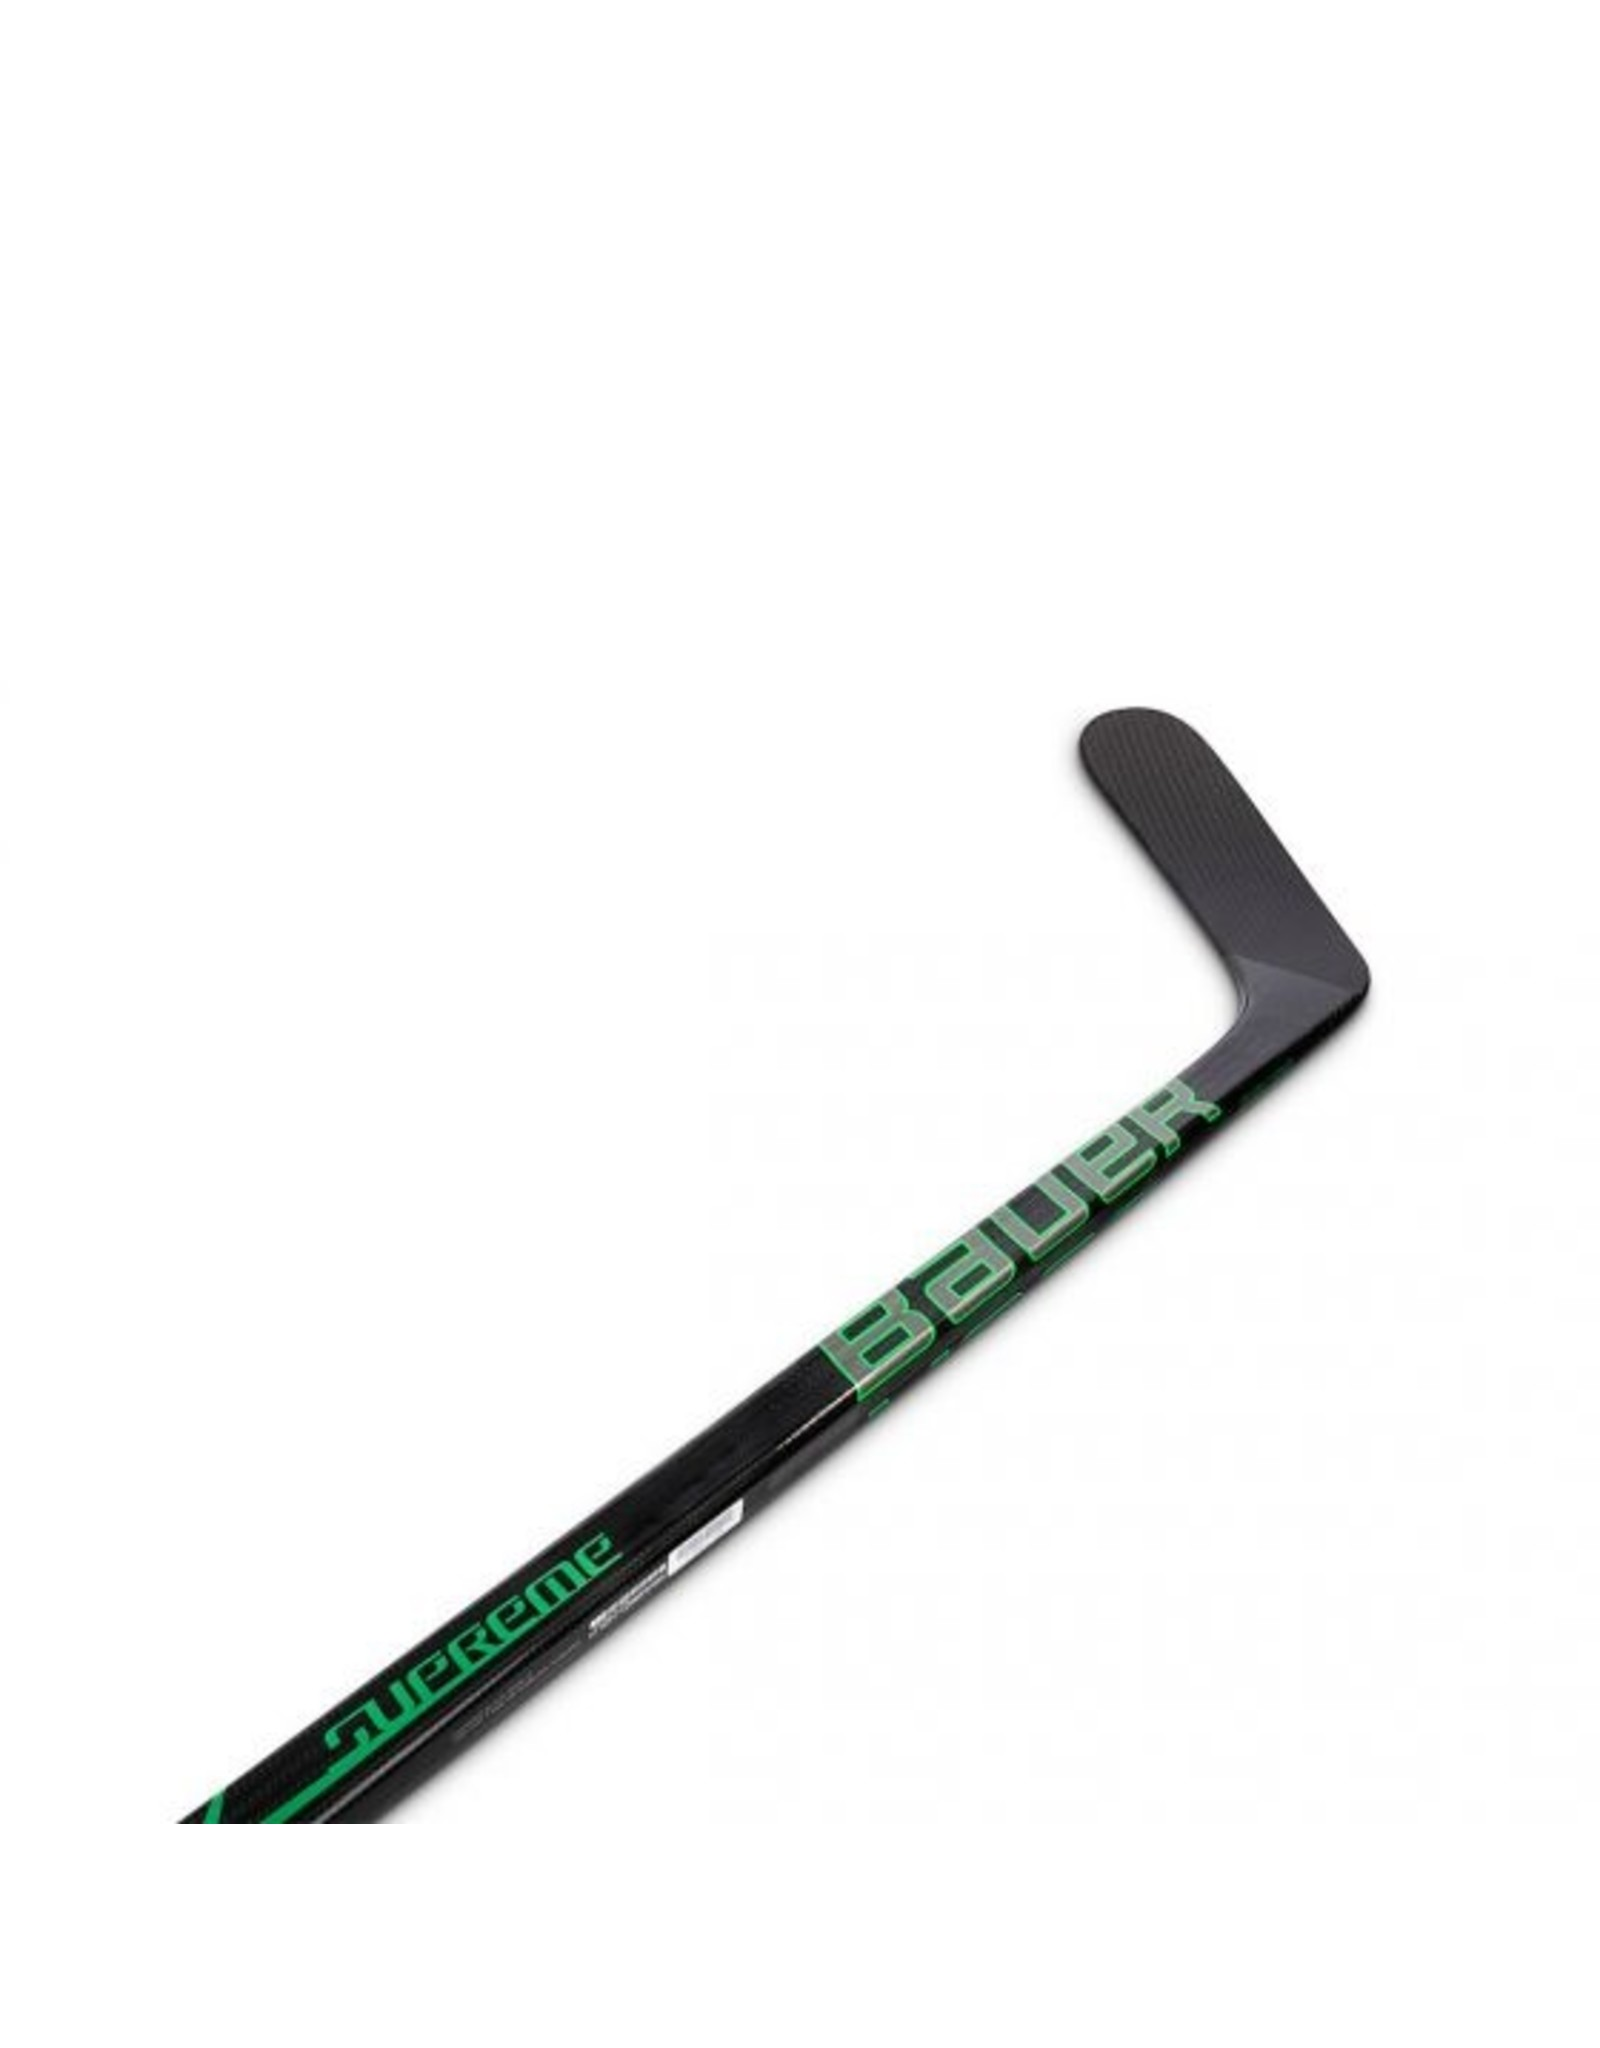 Bauer Hockey - Canada BAUER S20 SUPREME IGNITE PRO + INT OPS